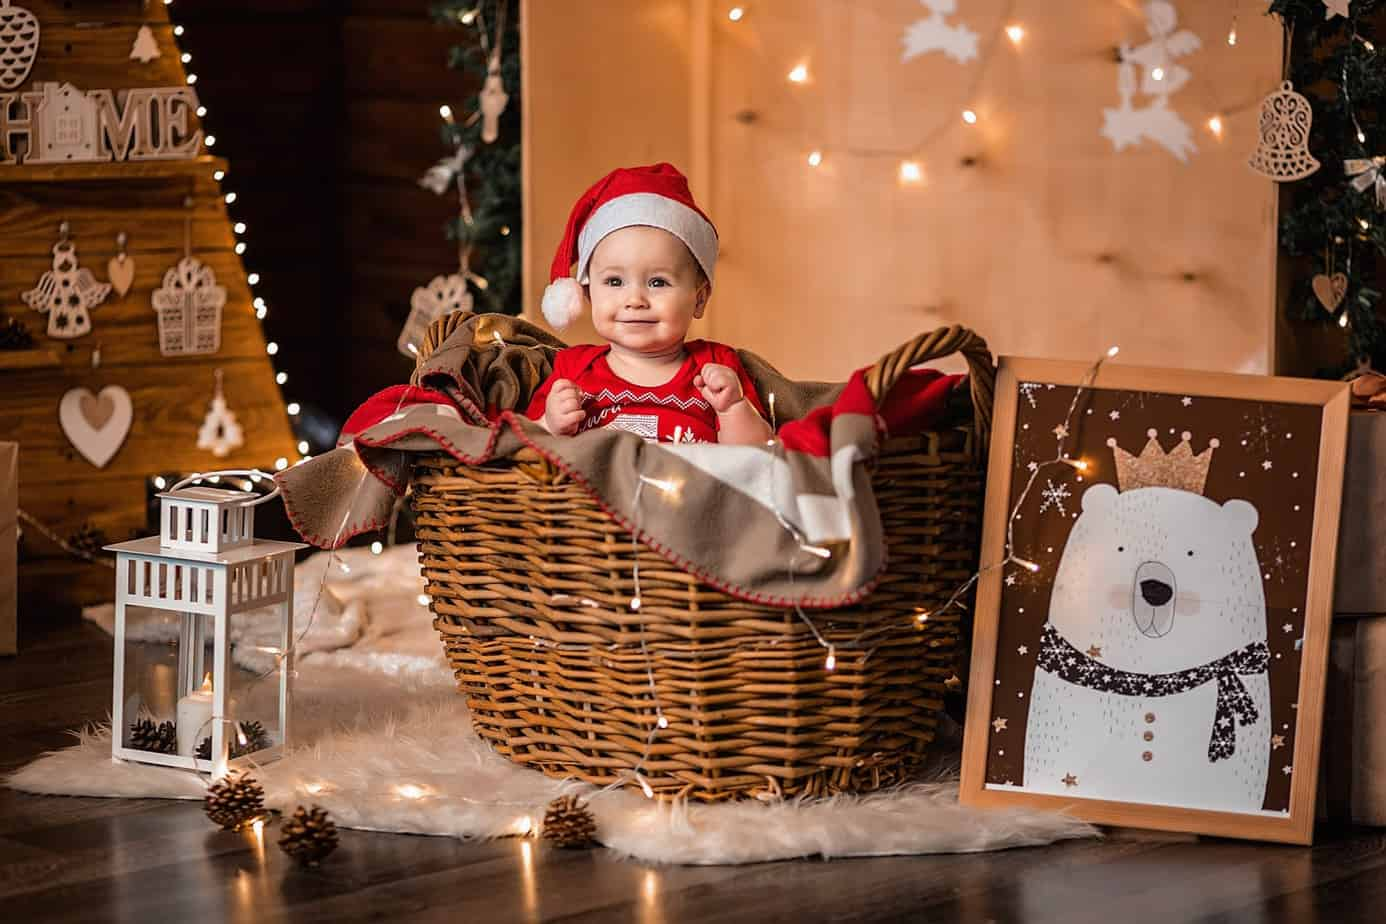 Baby Announcement: 7 Christmas Themed Baby Gender Reveal Ideas (2020)